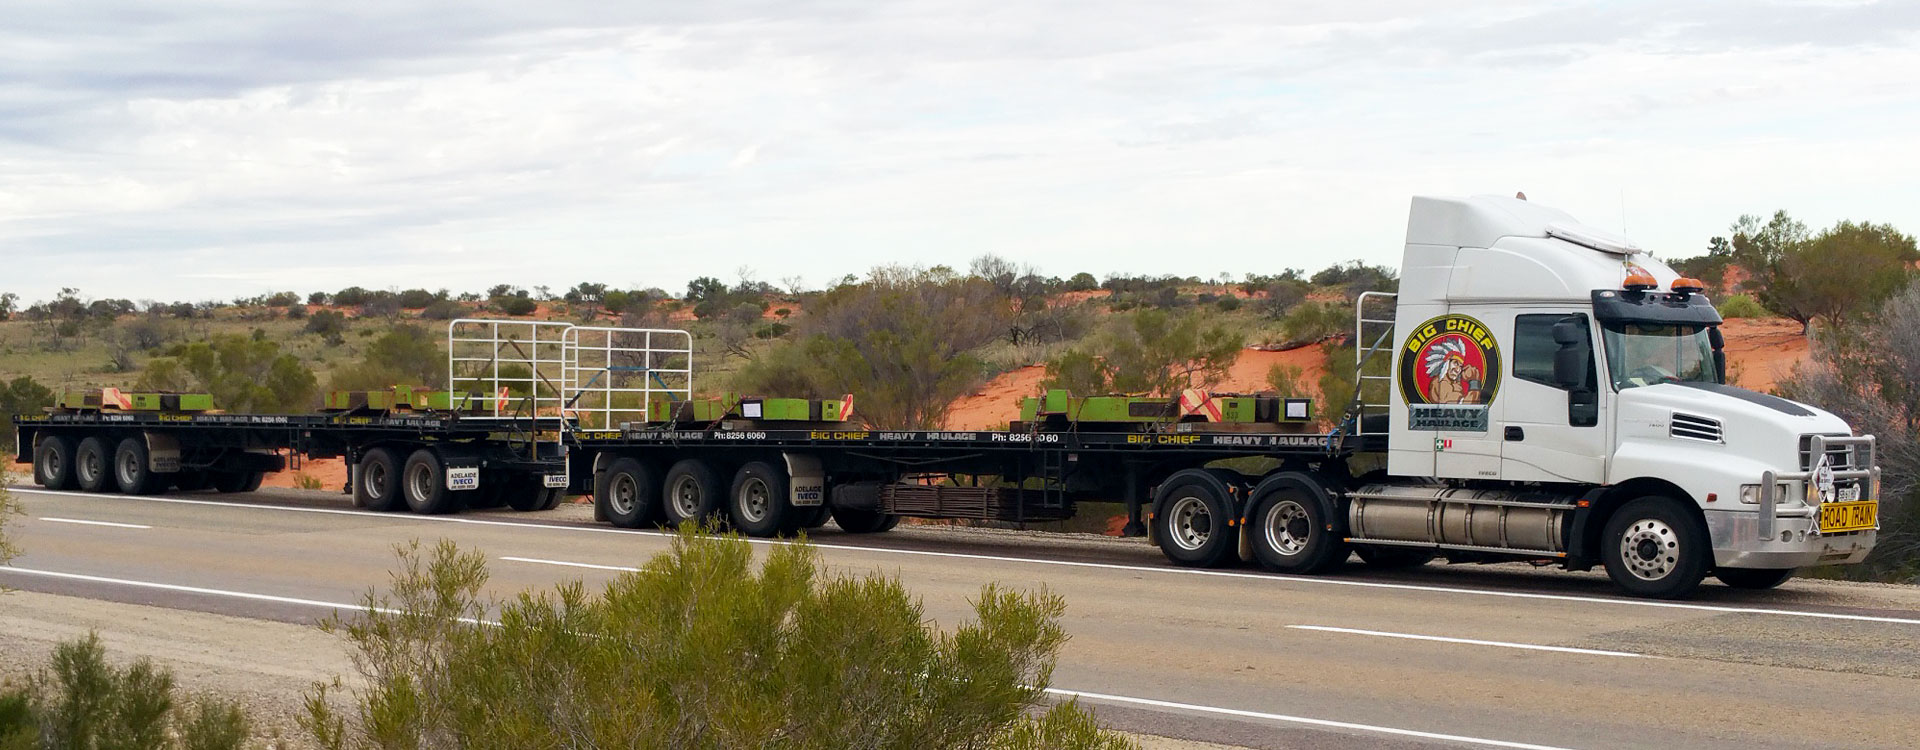 Big Chief Heavy Haulage Transport Truck with Road Train